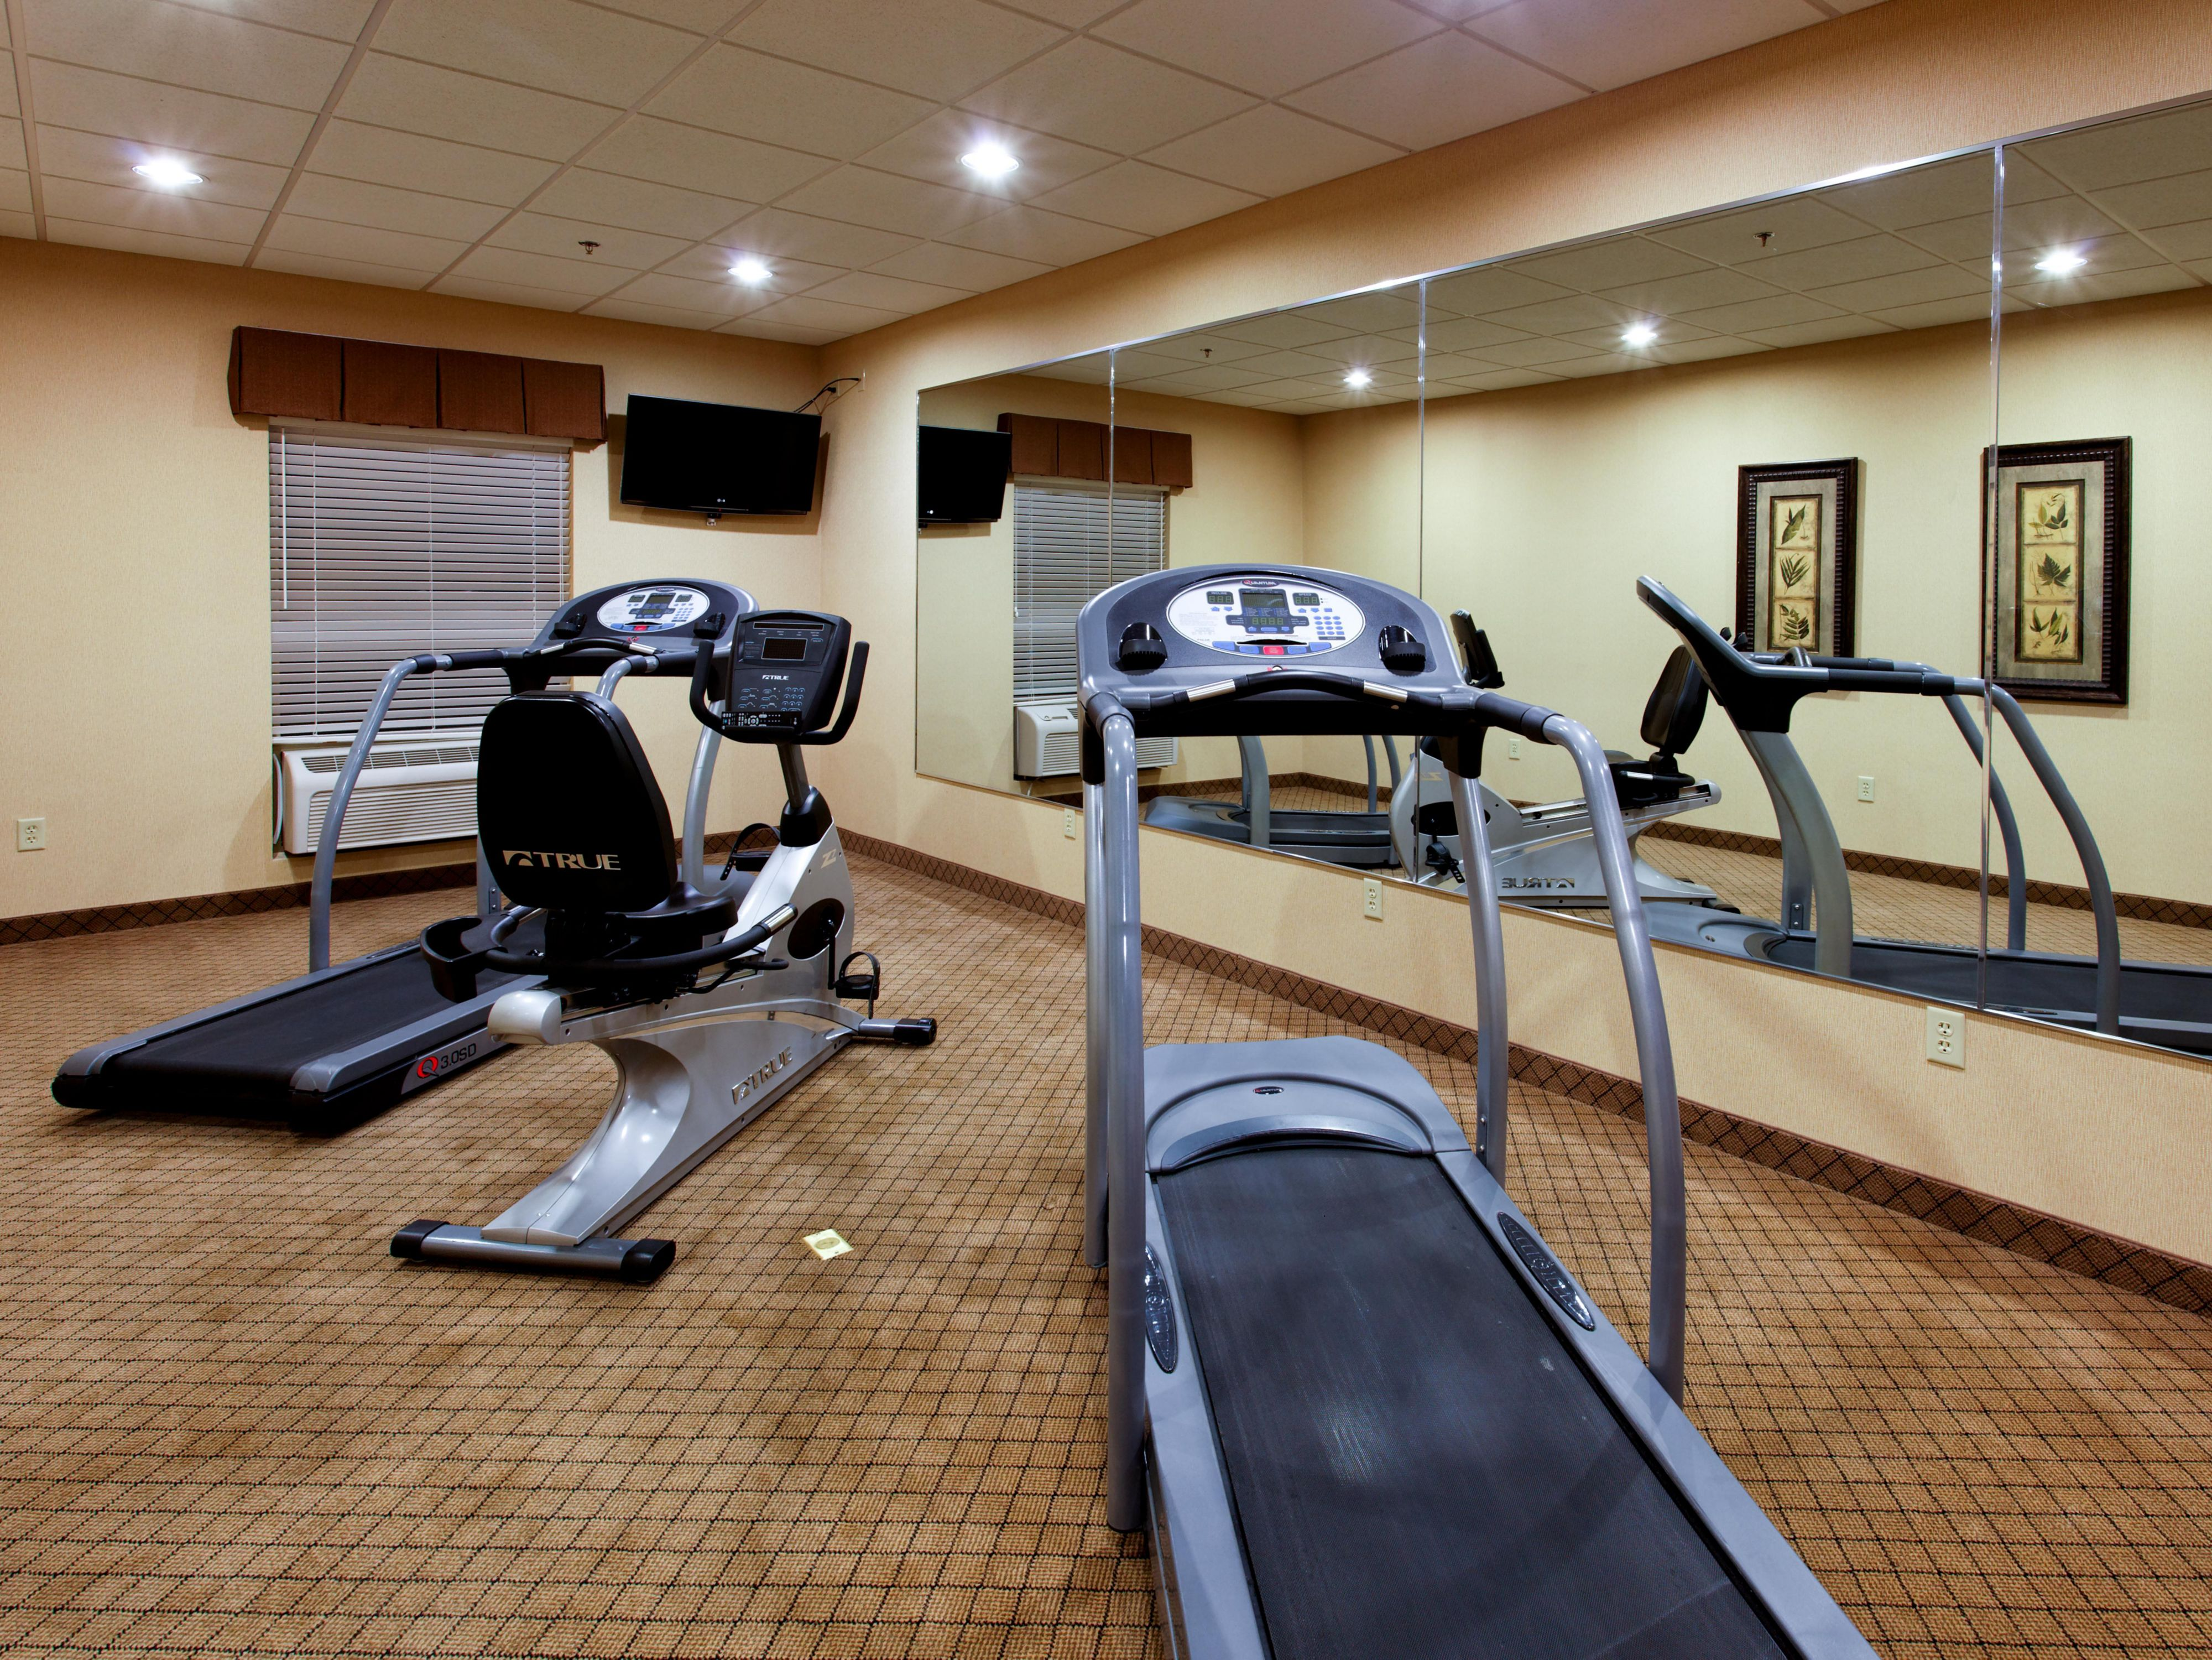 Treadmills and exercise bike help keep our guests fit